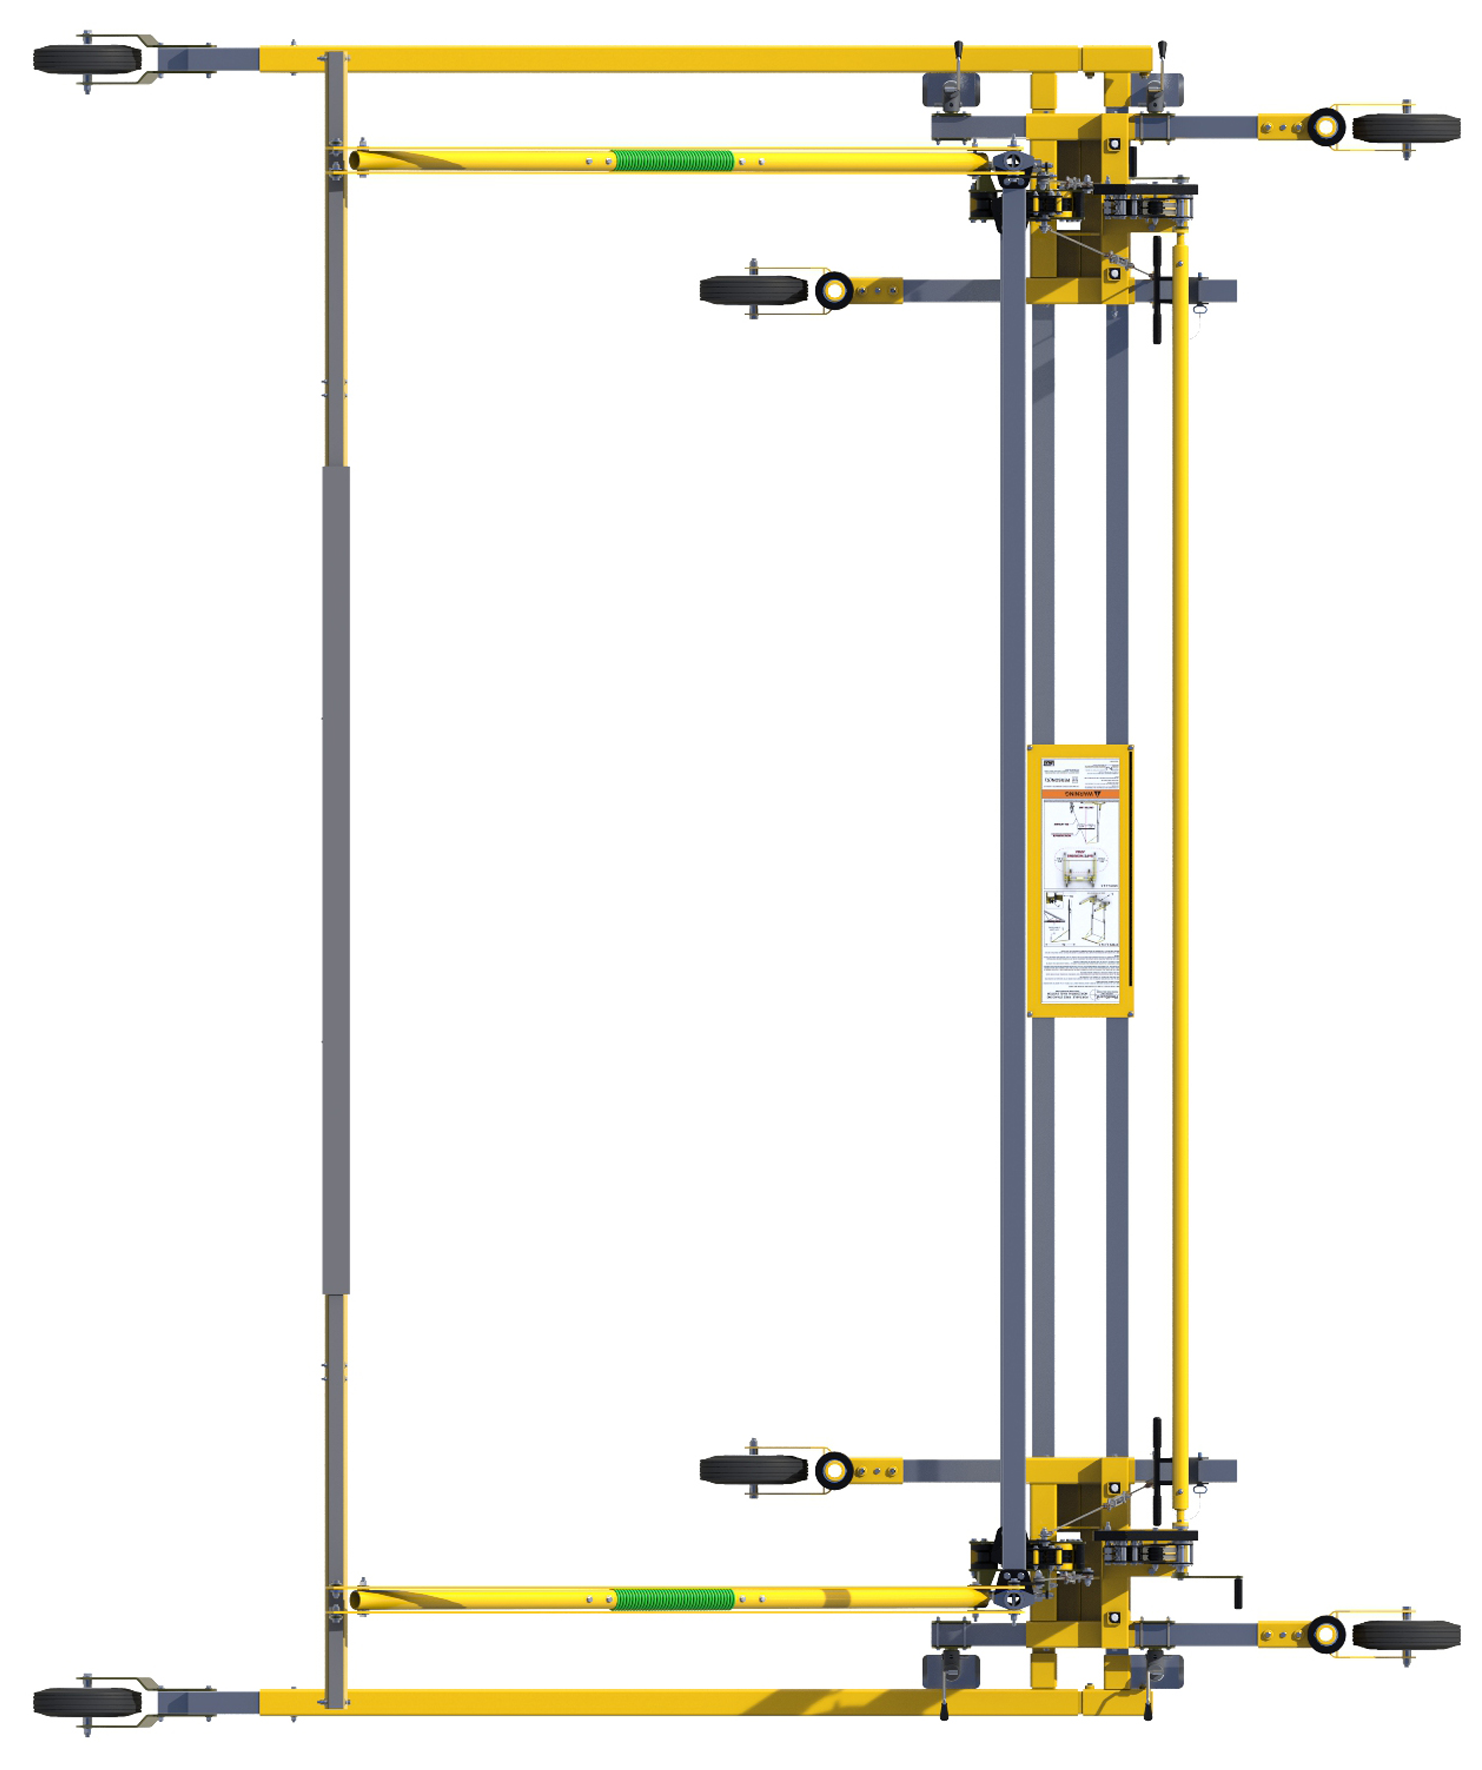 FlexiGuard Portable C-Frame Fall Arrest System Adjustable Height, Top View